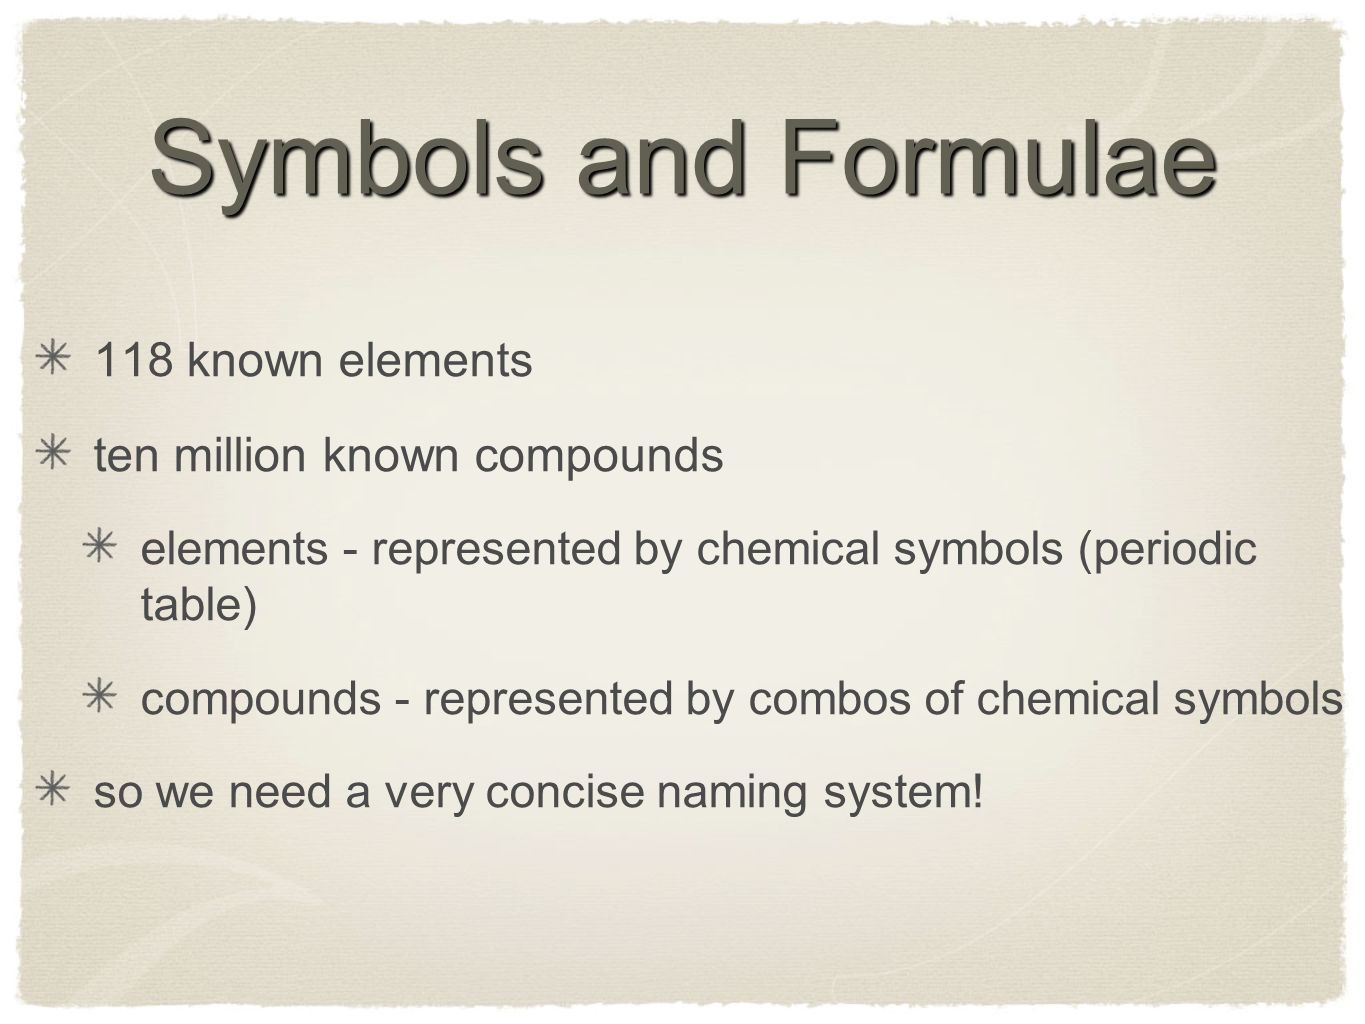 Chemical formulae symbols naming writing formulae ppt download 2 symbols and formulae 118 known elements ten million known compounds elements represented by chemical symbols periodic table compounds represented by buycottarizona Choice Image